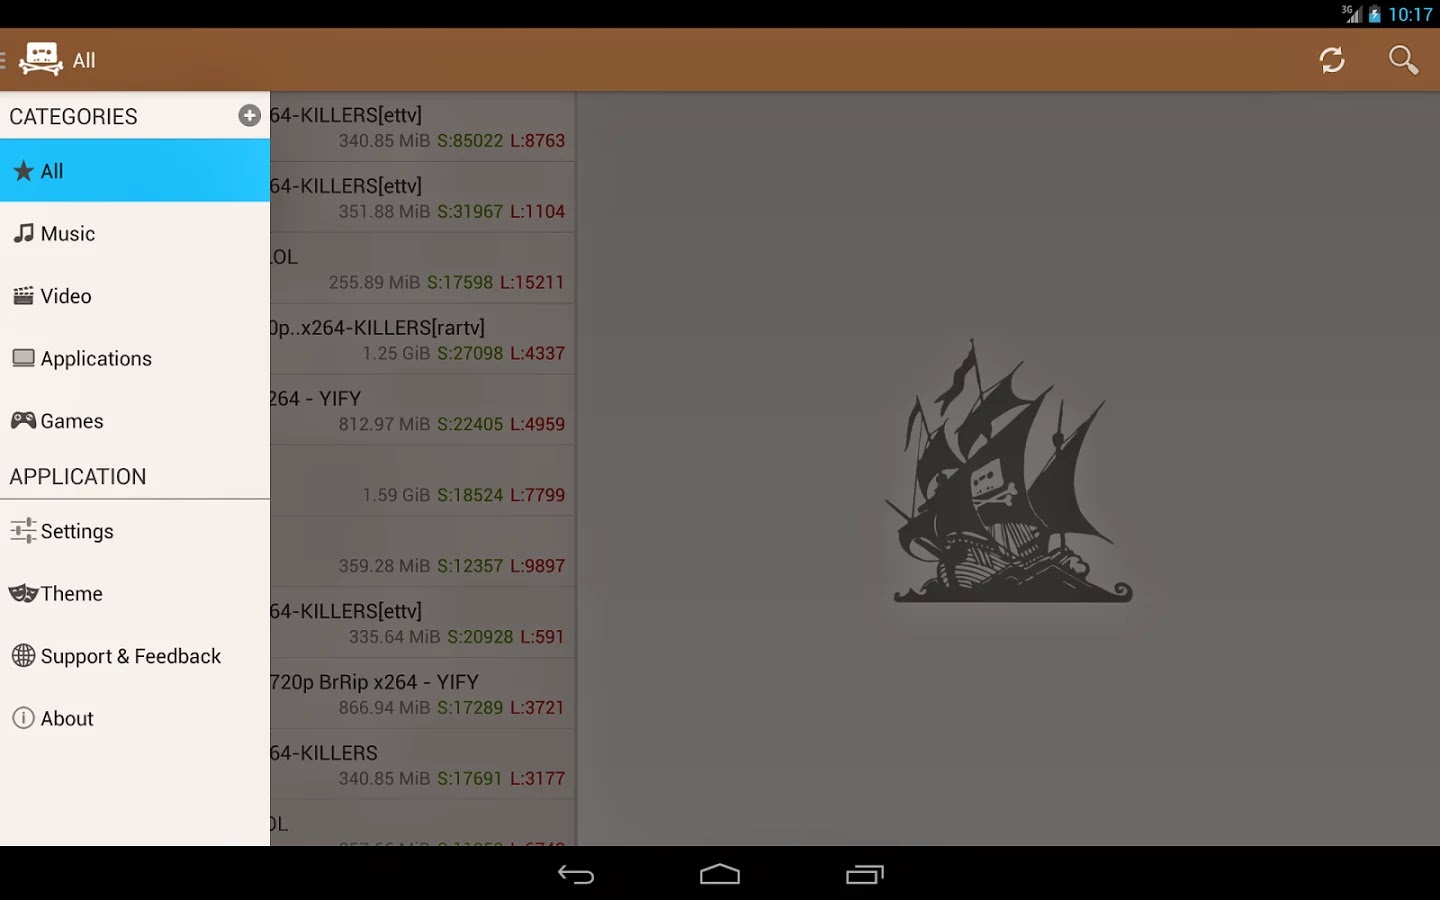 The Pirate Bay Browser Premium v6.1